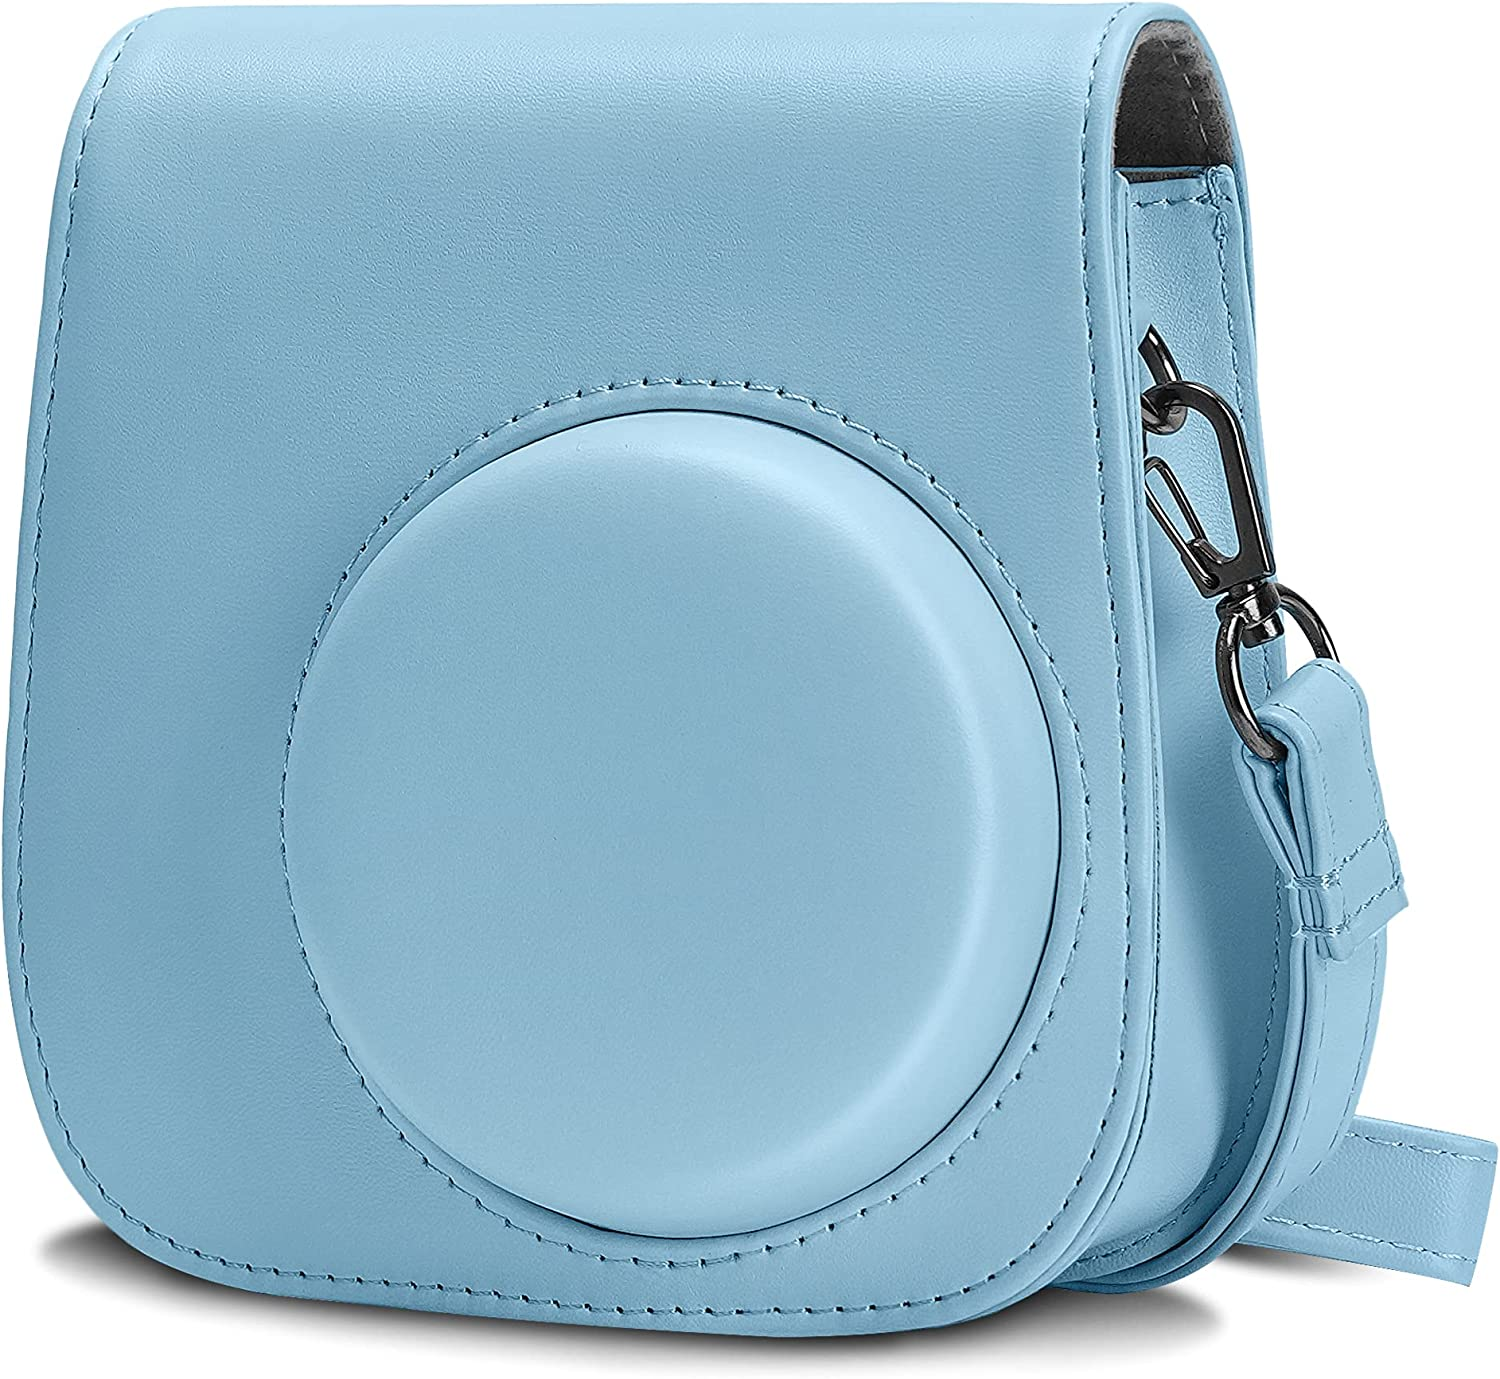 Blummy PU Leather Gifts Max 71% OFF Camera Case Fujifilm Instax Compatible Mi with